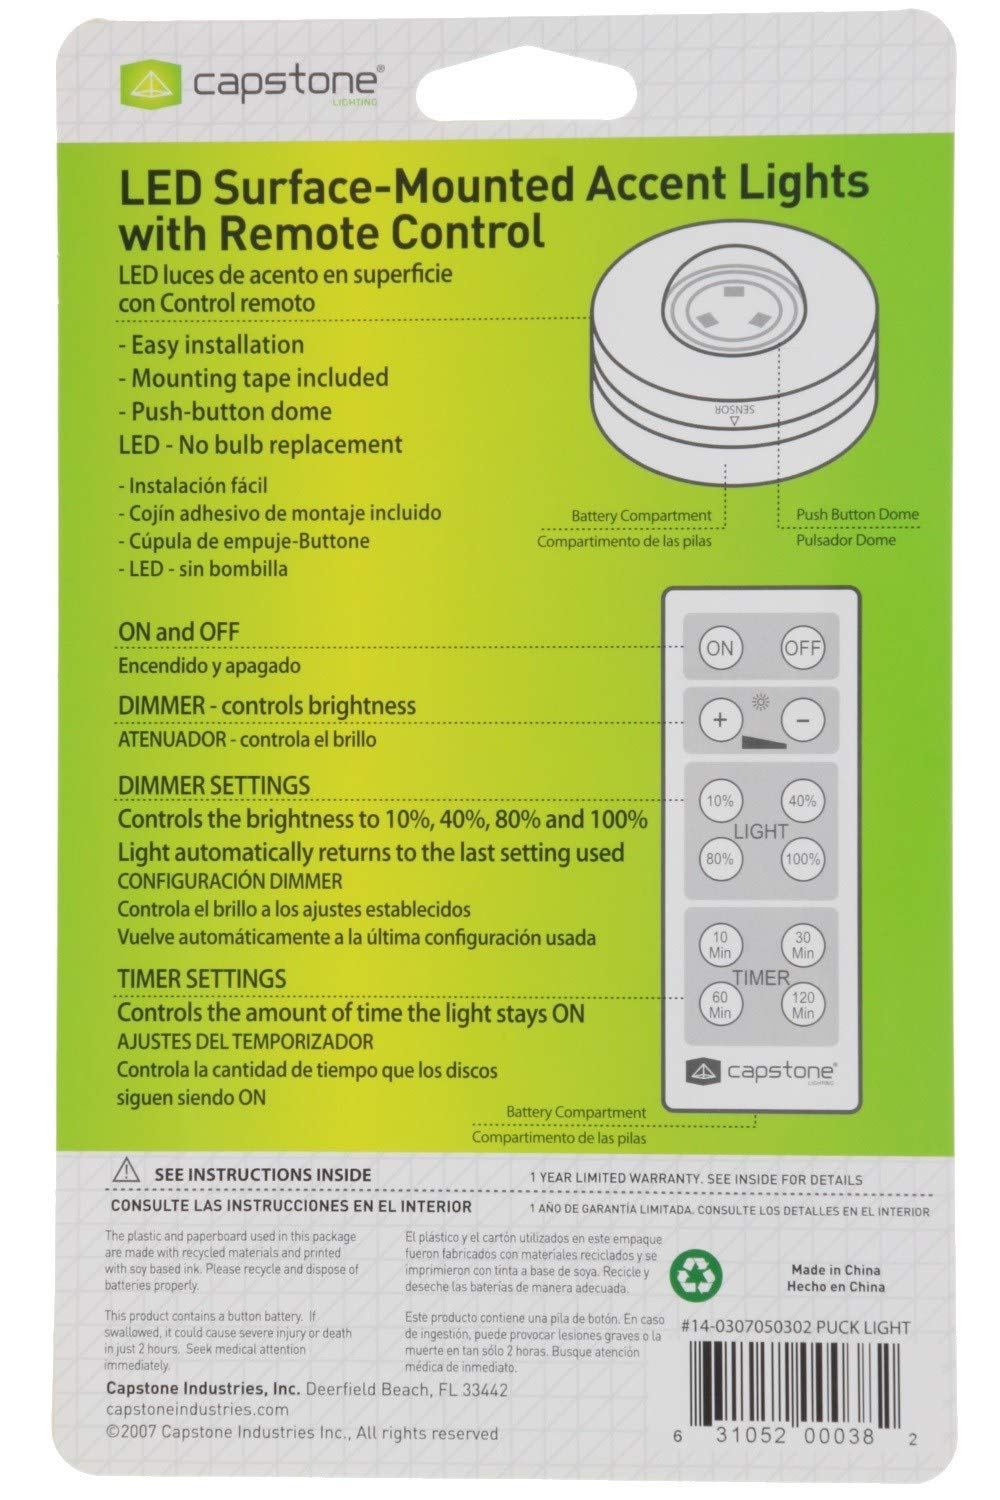 Capstone Wireless LED Surface-Mounted Accent Lights - Push Button Dome with Adhesive Tape & Remote Control - 3 Bright White LED Bulbs Ideal for Holiday, ...